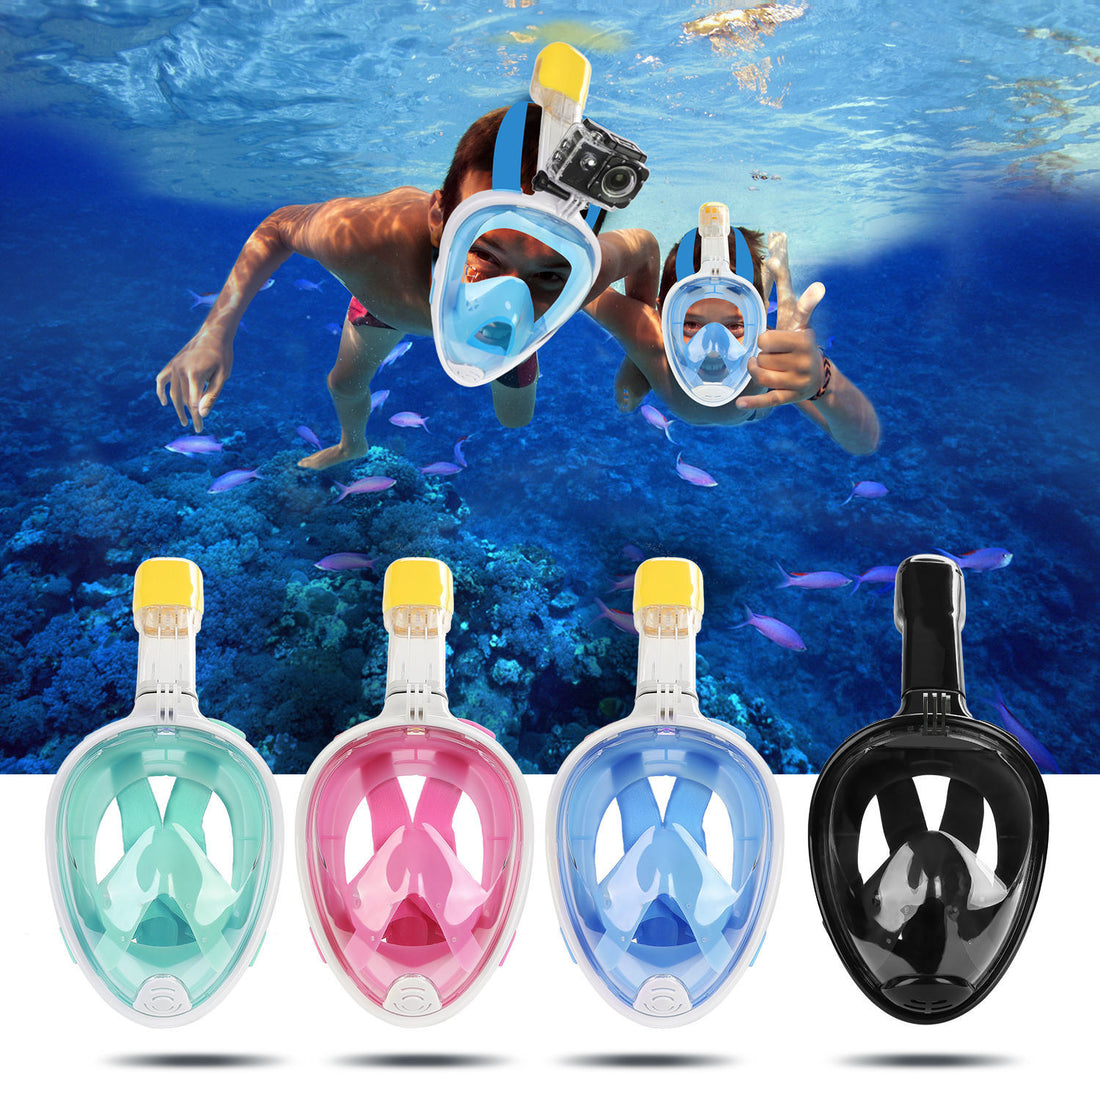 H20 180° Full Face Snorkel Mask With GoPro Mount